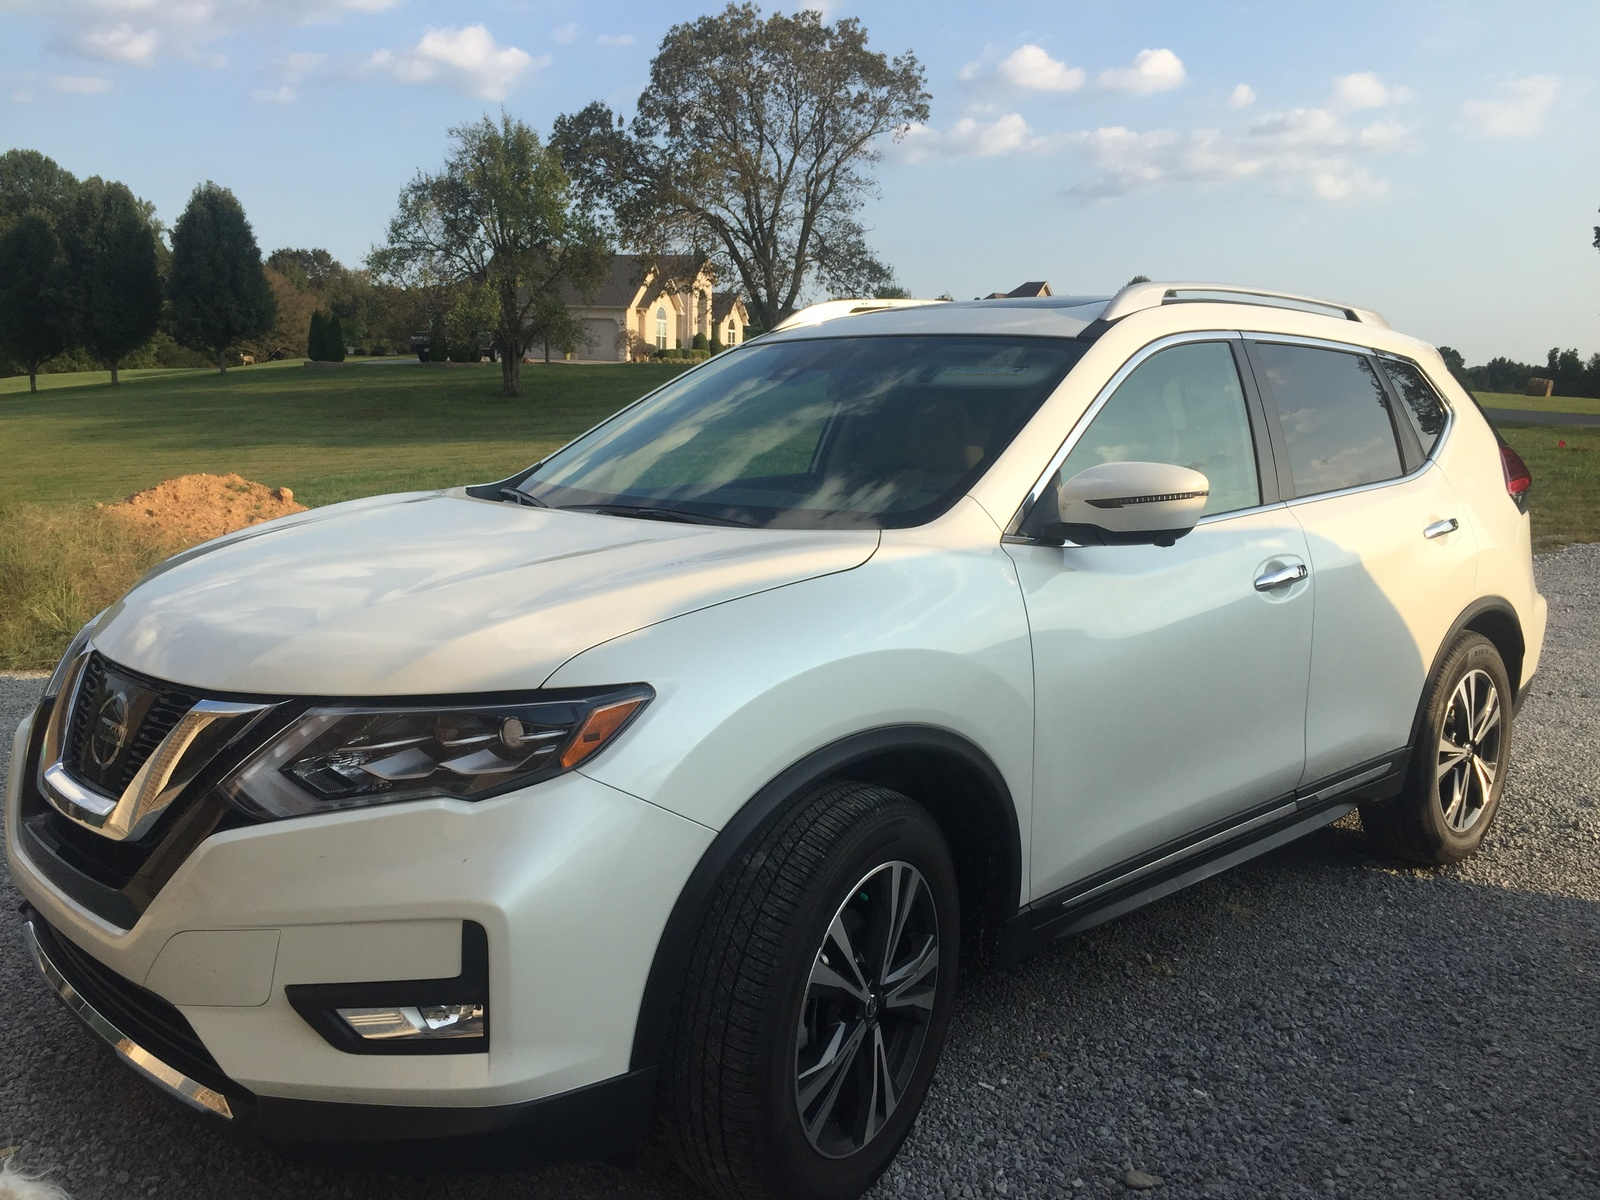 Picture of 2017 nissan rogue sl fwd